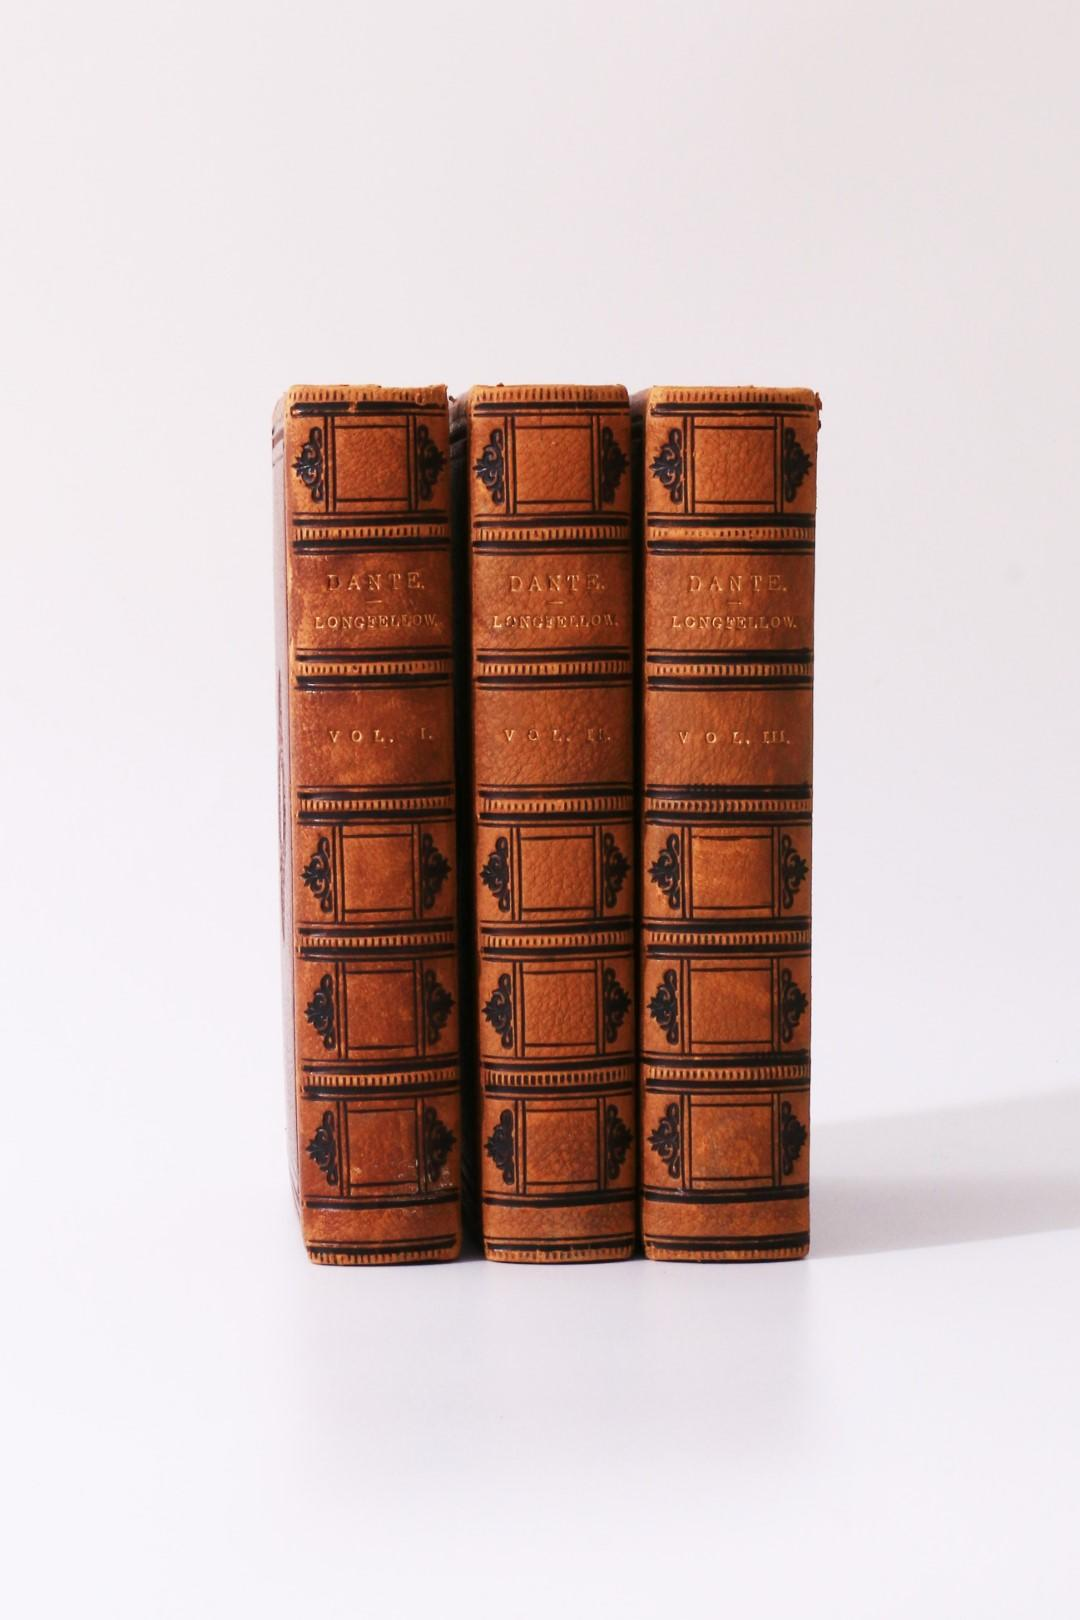 Dante Alighieri [trans. Henry Wadsworth Longfellow] - The Divine Comedy - Osgood and Co., 1871, First Edition.